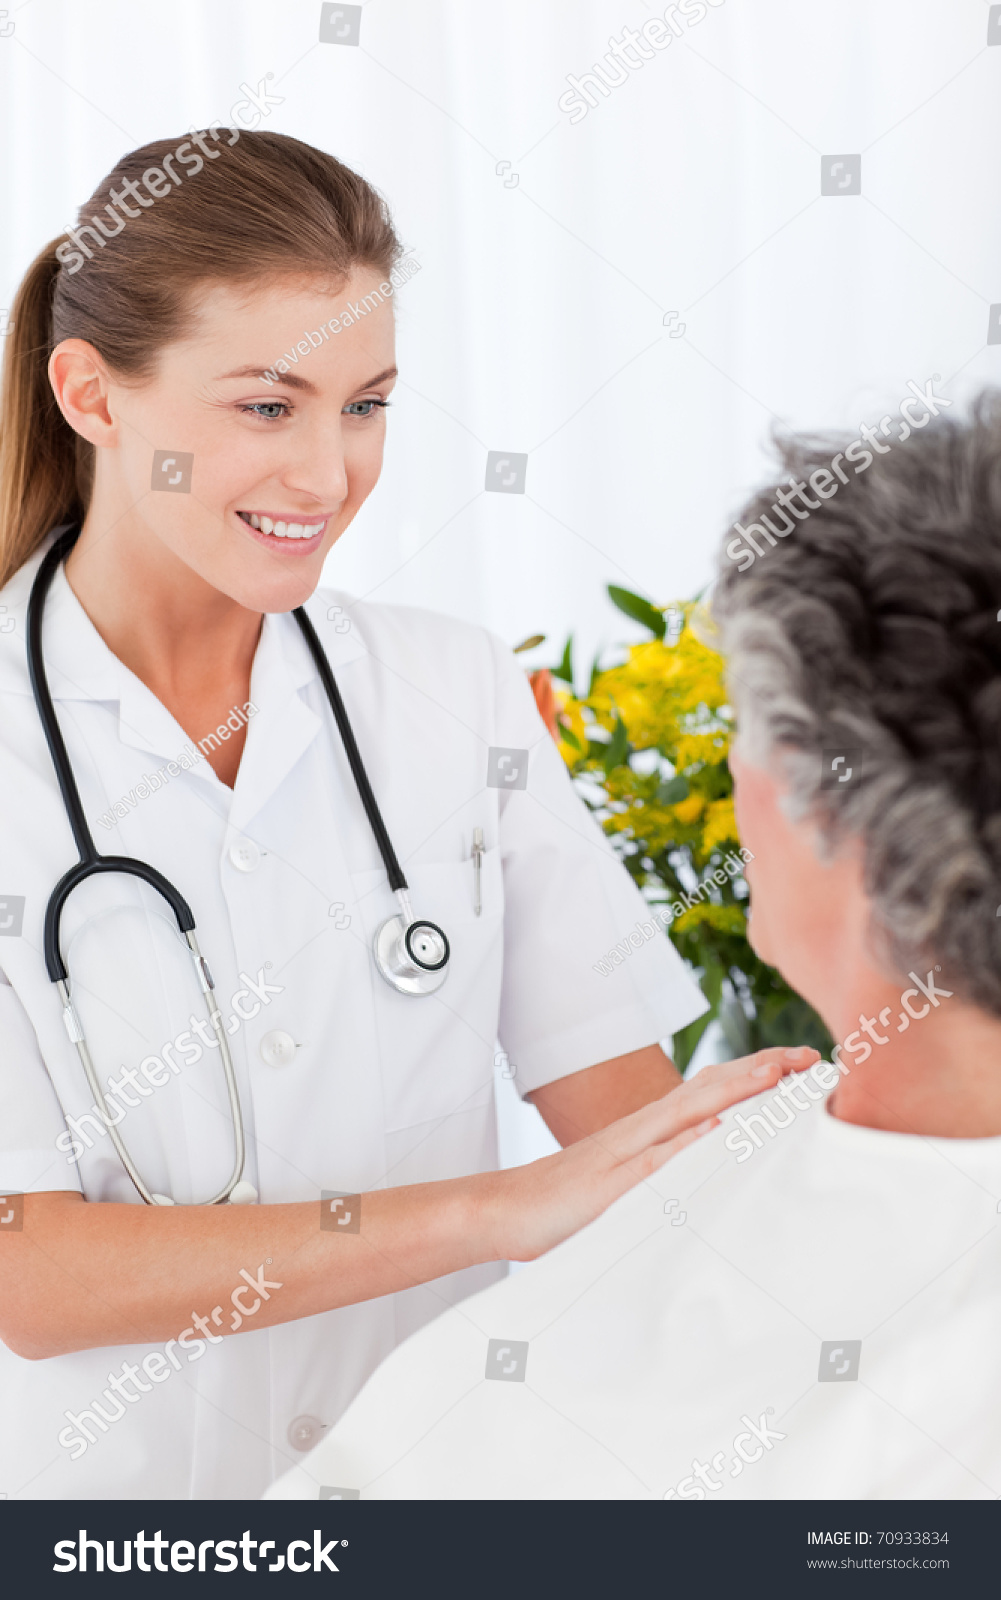 Nurse Taking Care Her Patient Stock Photo 70933834 ...